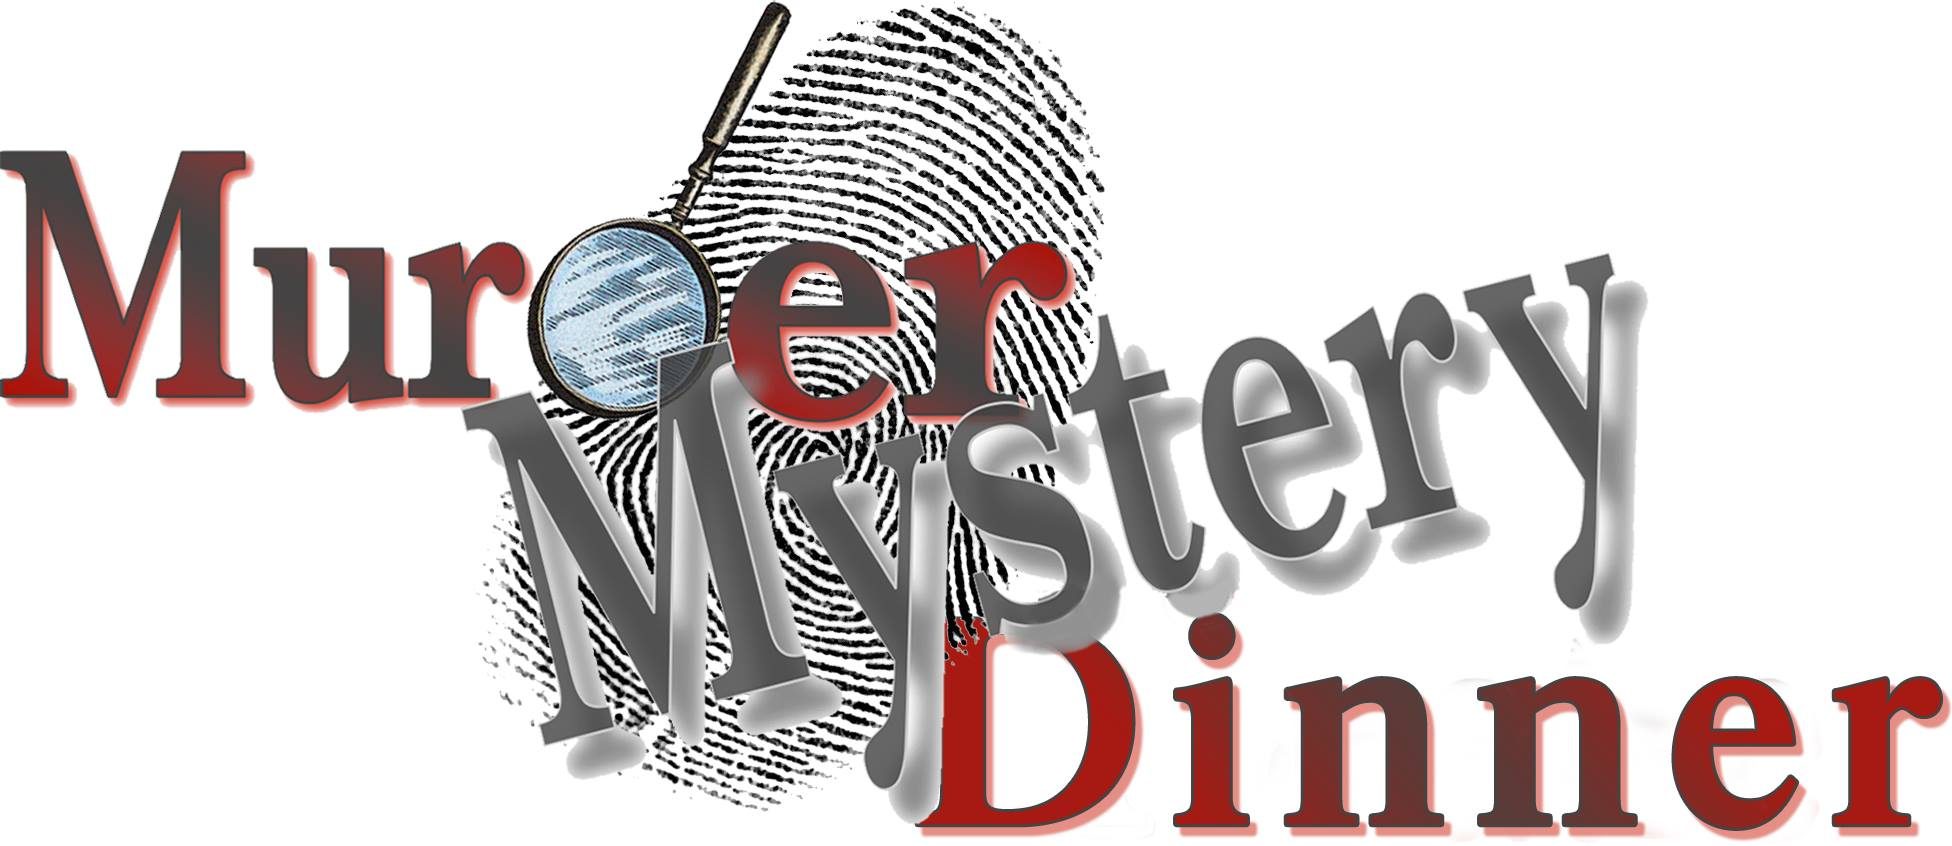 Free theatre cliparts download. Mystery clipart mystery dinner